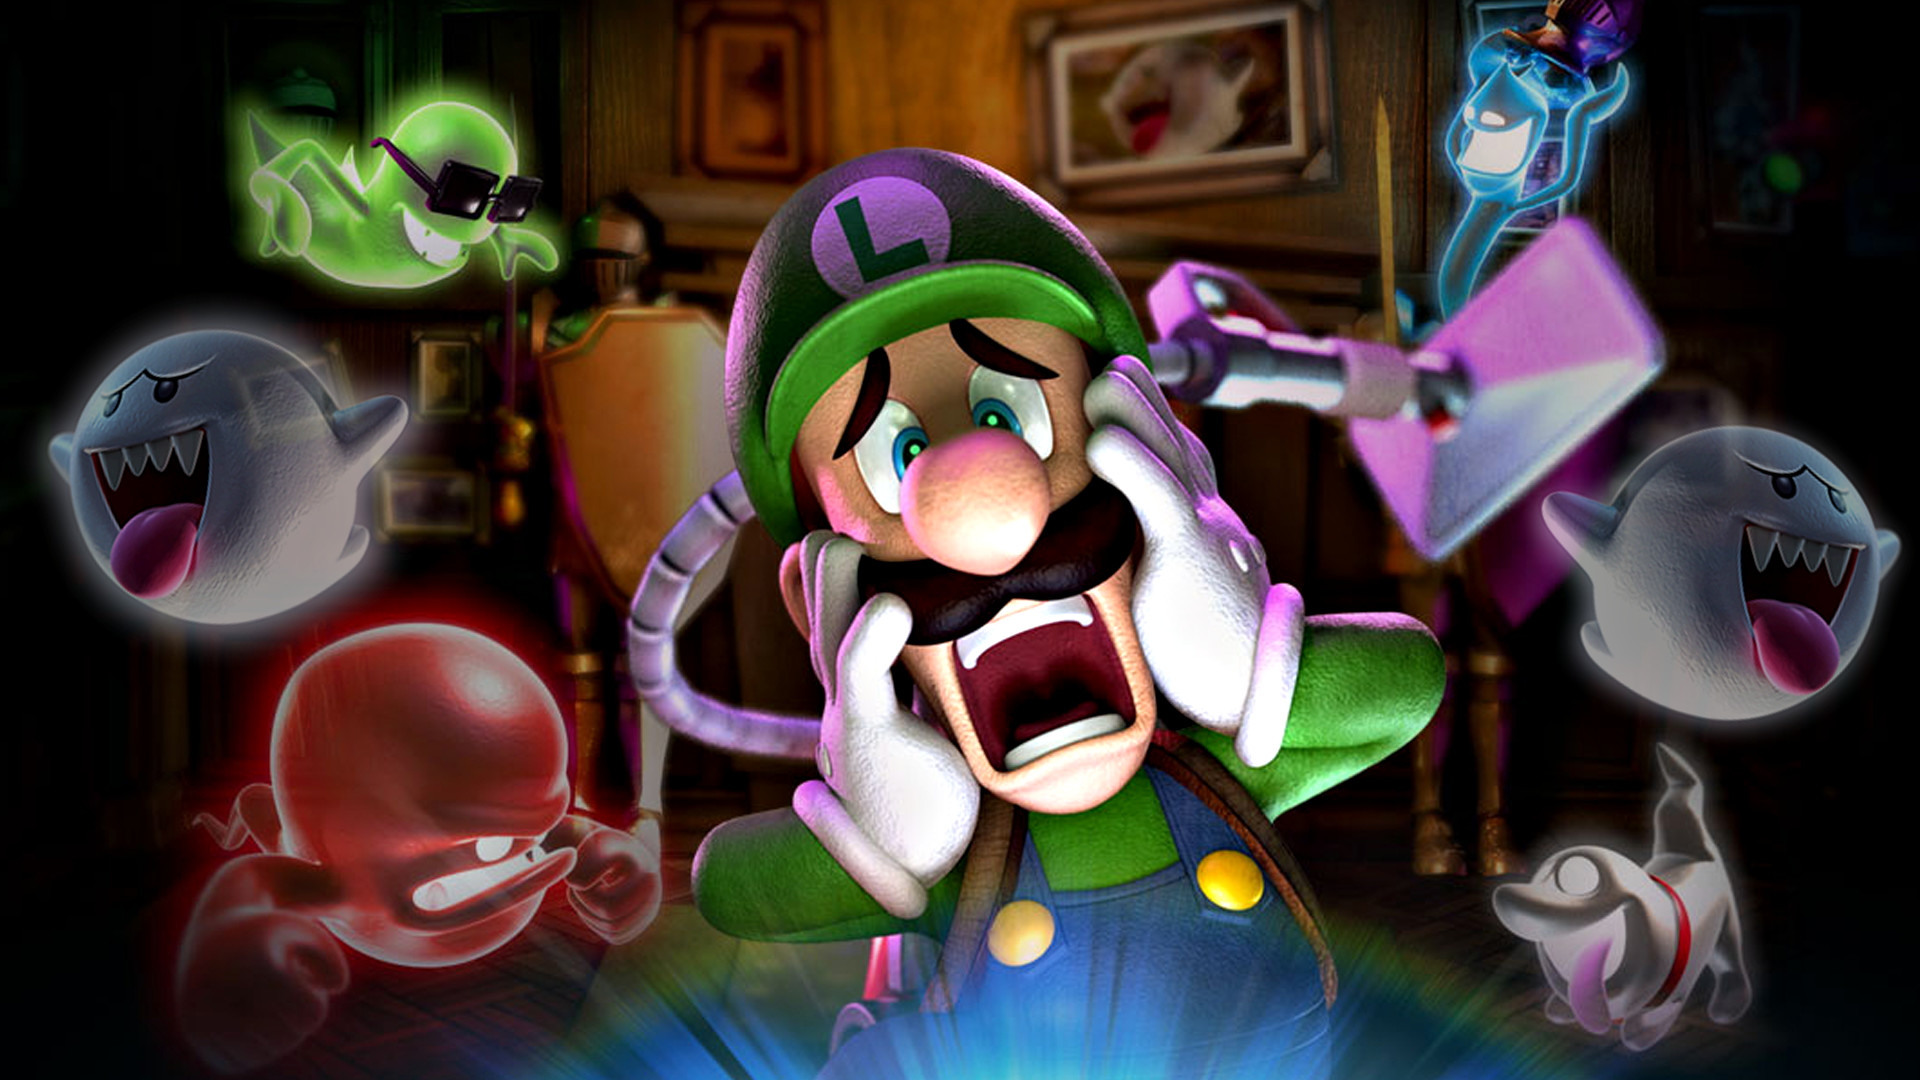 1920x1080 Luigis Mansion 2 Dark Moon HD Wallpaper By Louie82Y On DeviantArt